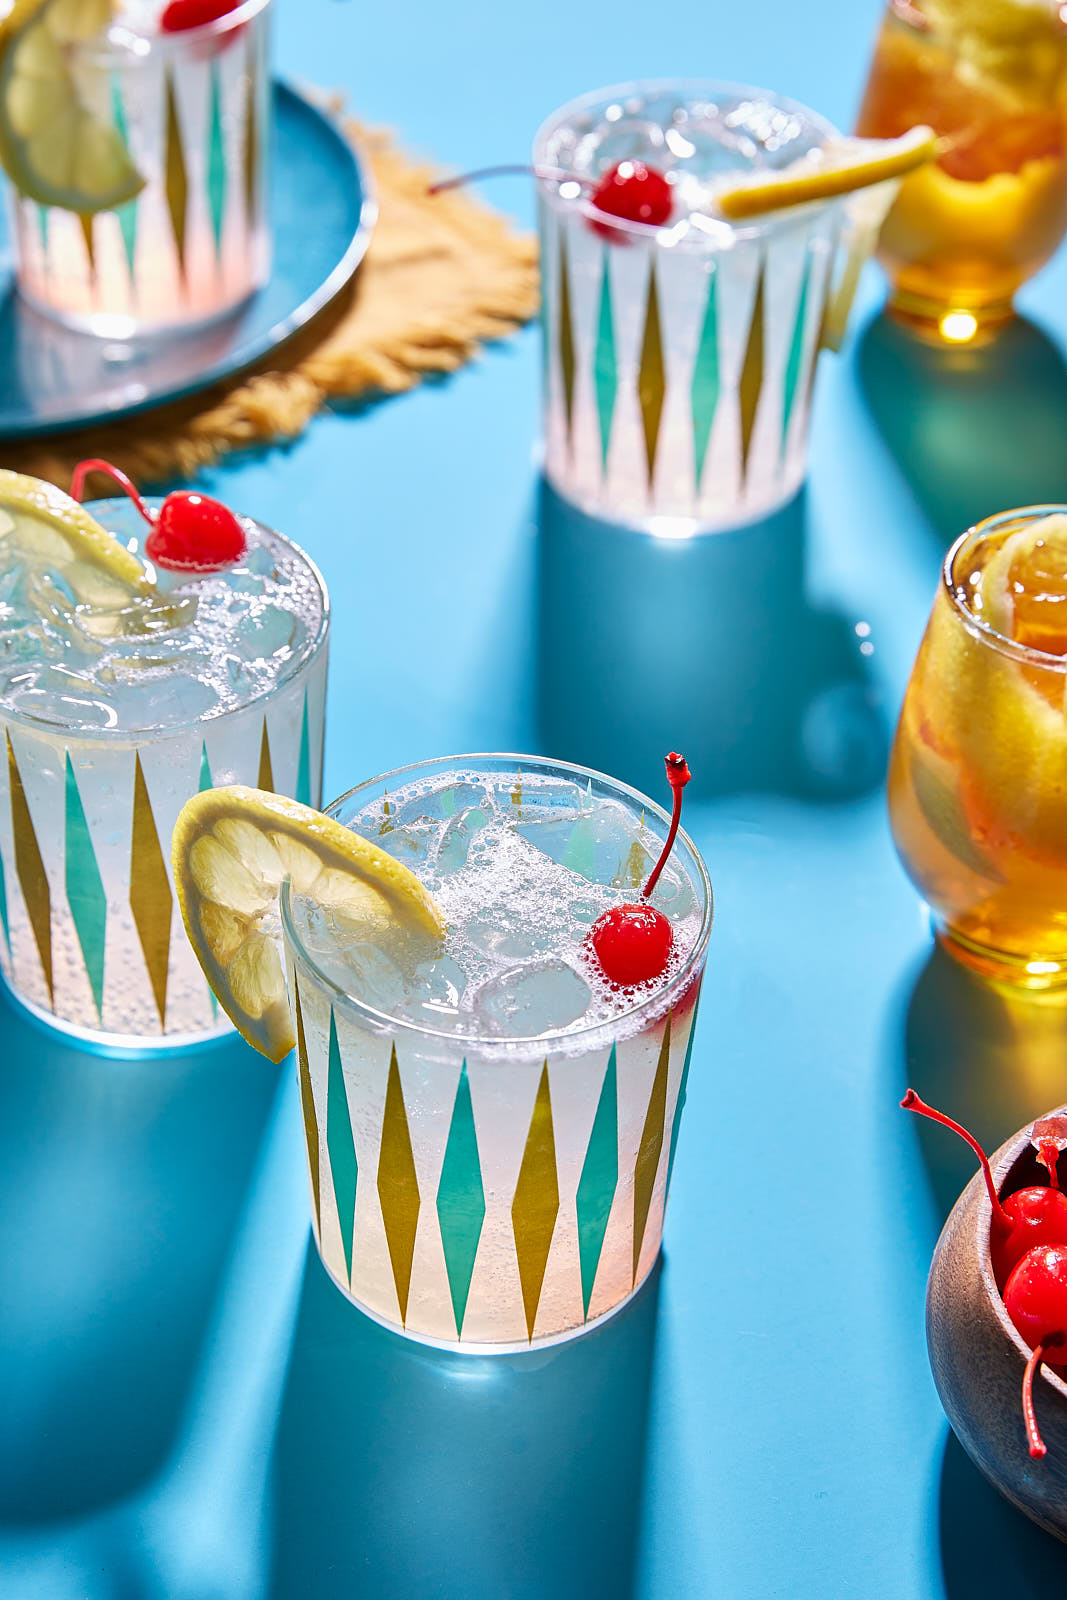 Vintage drinks photo by Shell Royster, food photographer